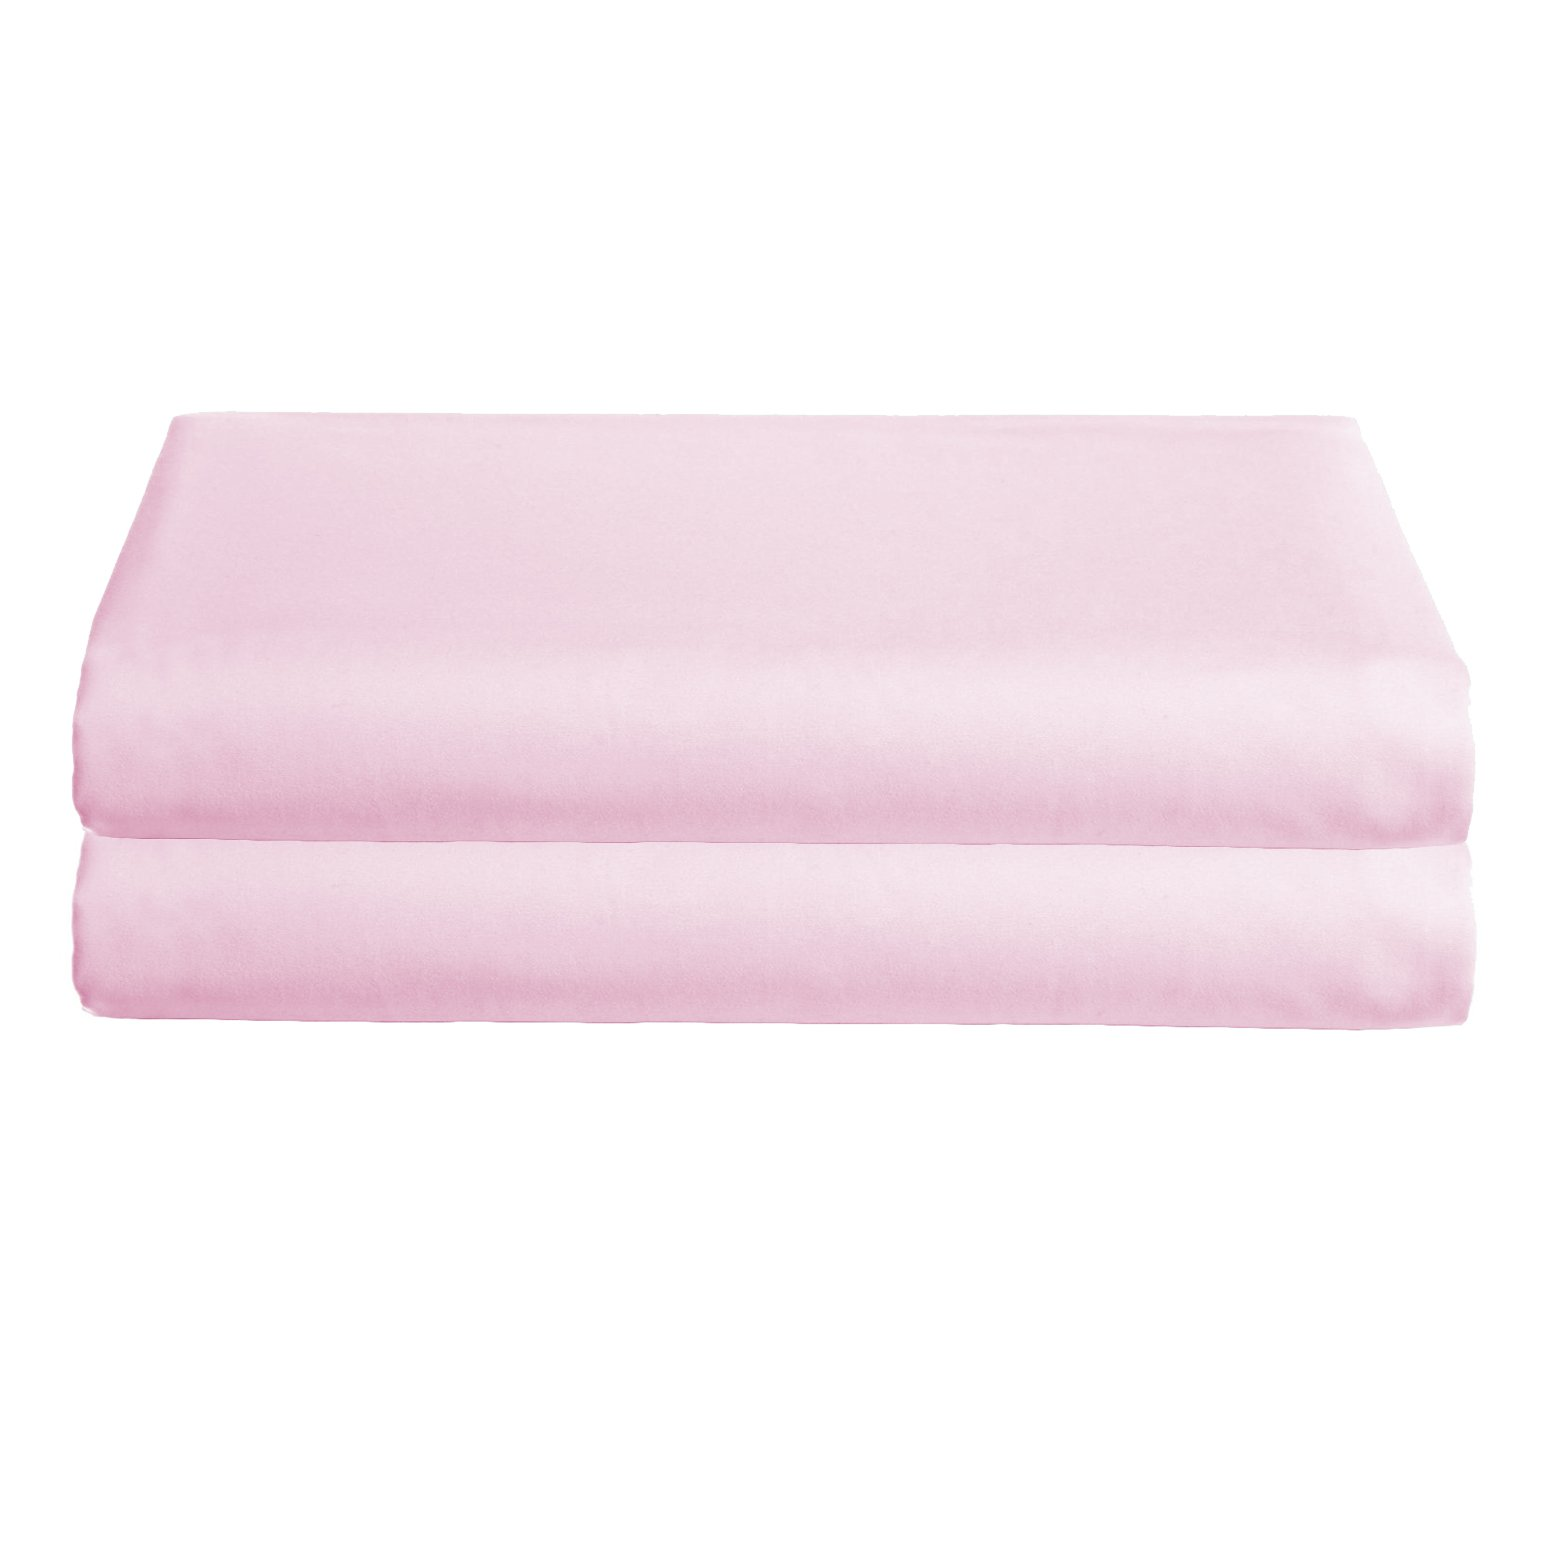 Babydoll Bedding Poly Cotton Set of 2 Cradle Sheets, Pink, 15'' x 33''